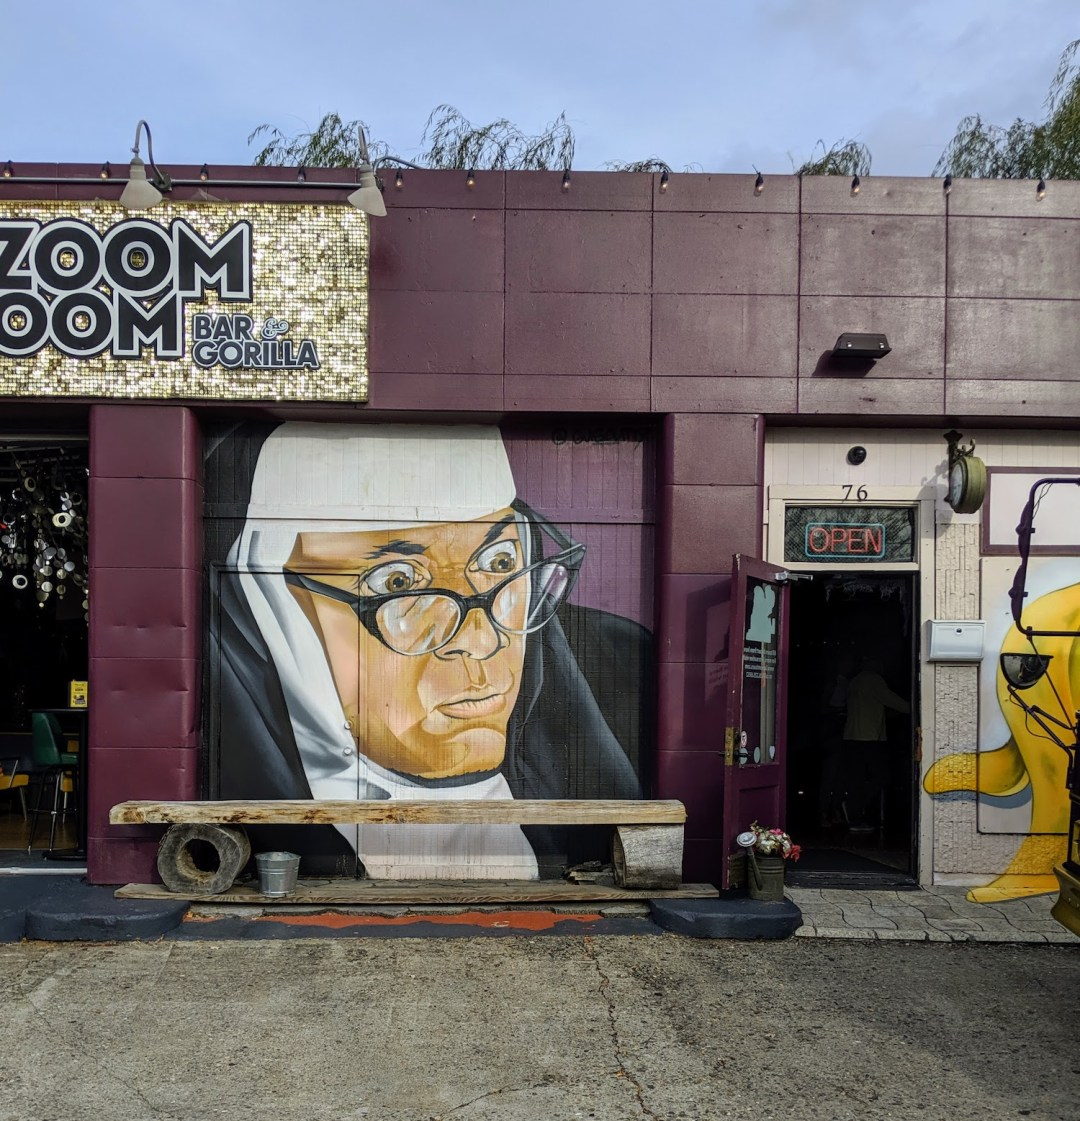 mural of a nun outside of the LaZoom Room